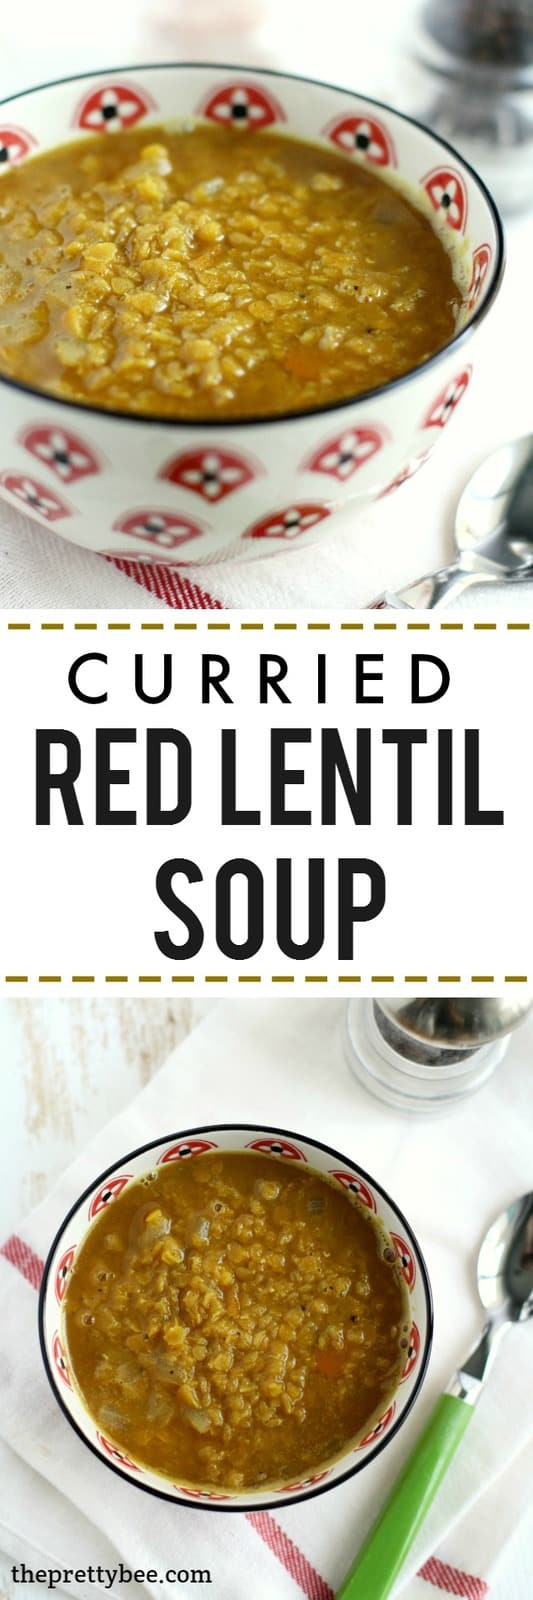 Fragrant, spicy, delicious curried red lentil soup. This soup is healthy and tasty - perfect for an easy dinner!